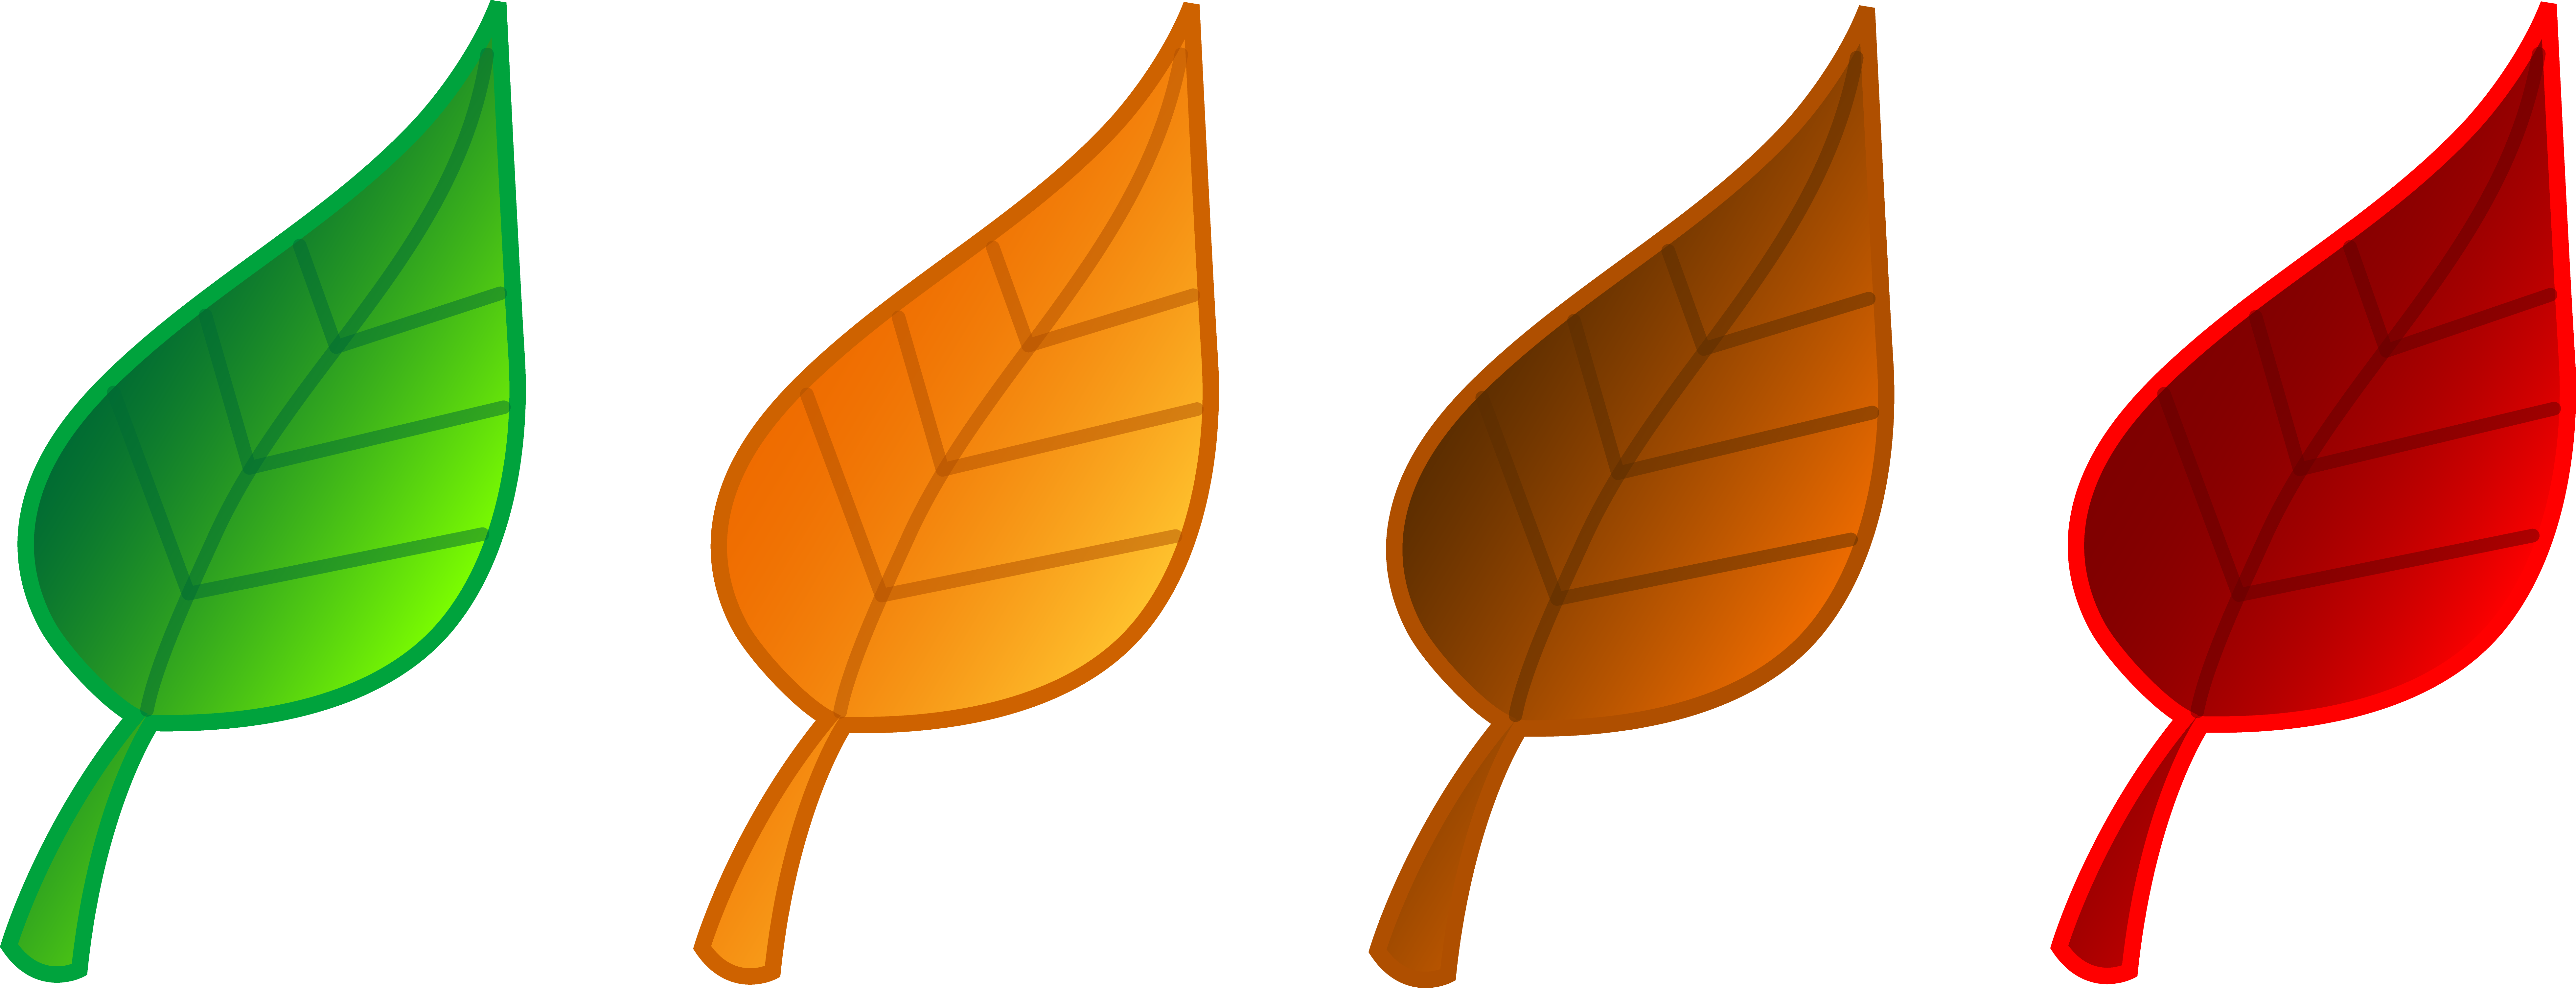 7840x3006 Clip Art Tree No Leaves Free Clipart Images